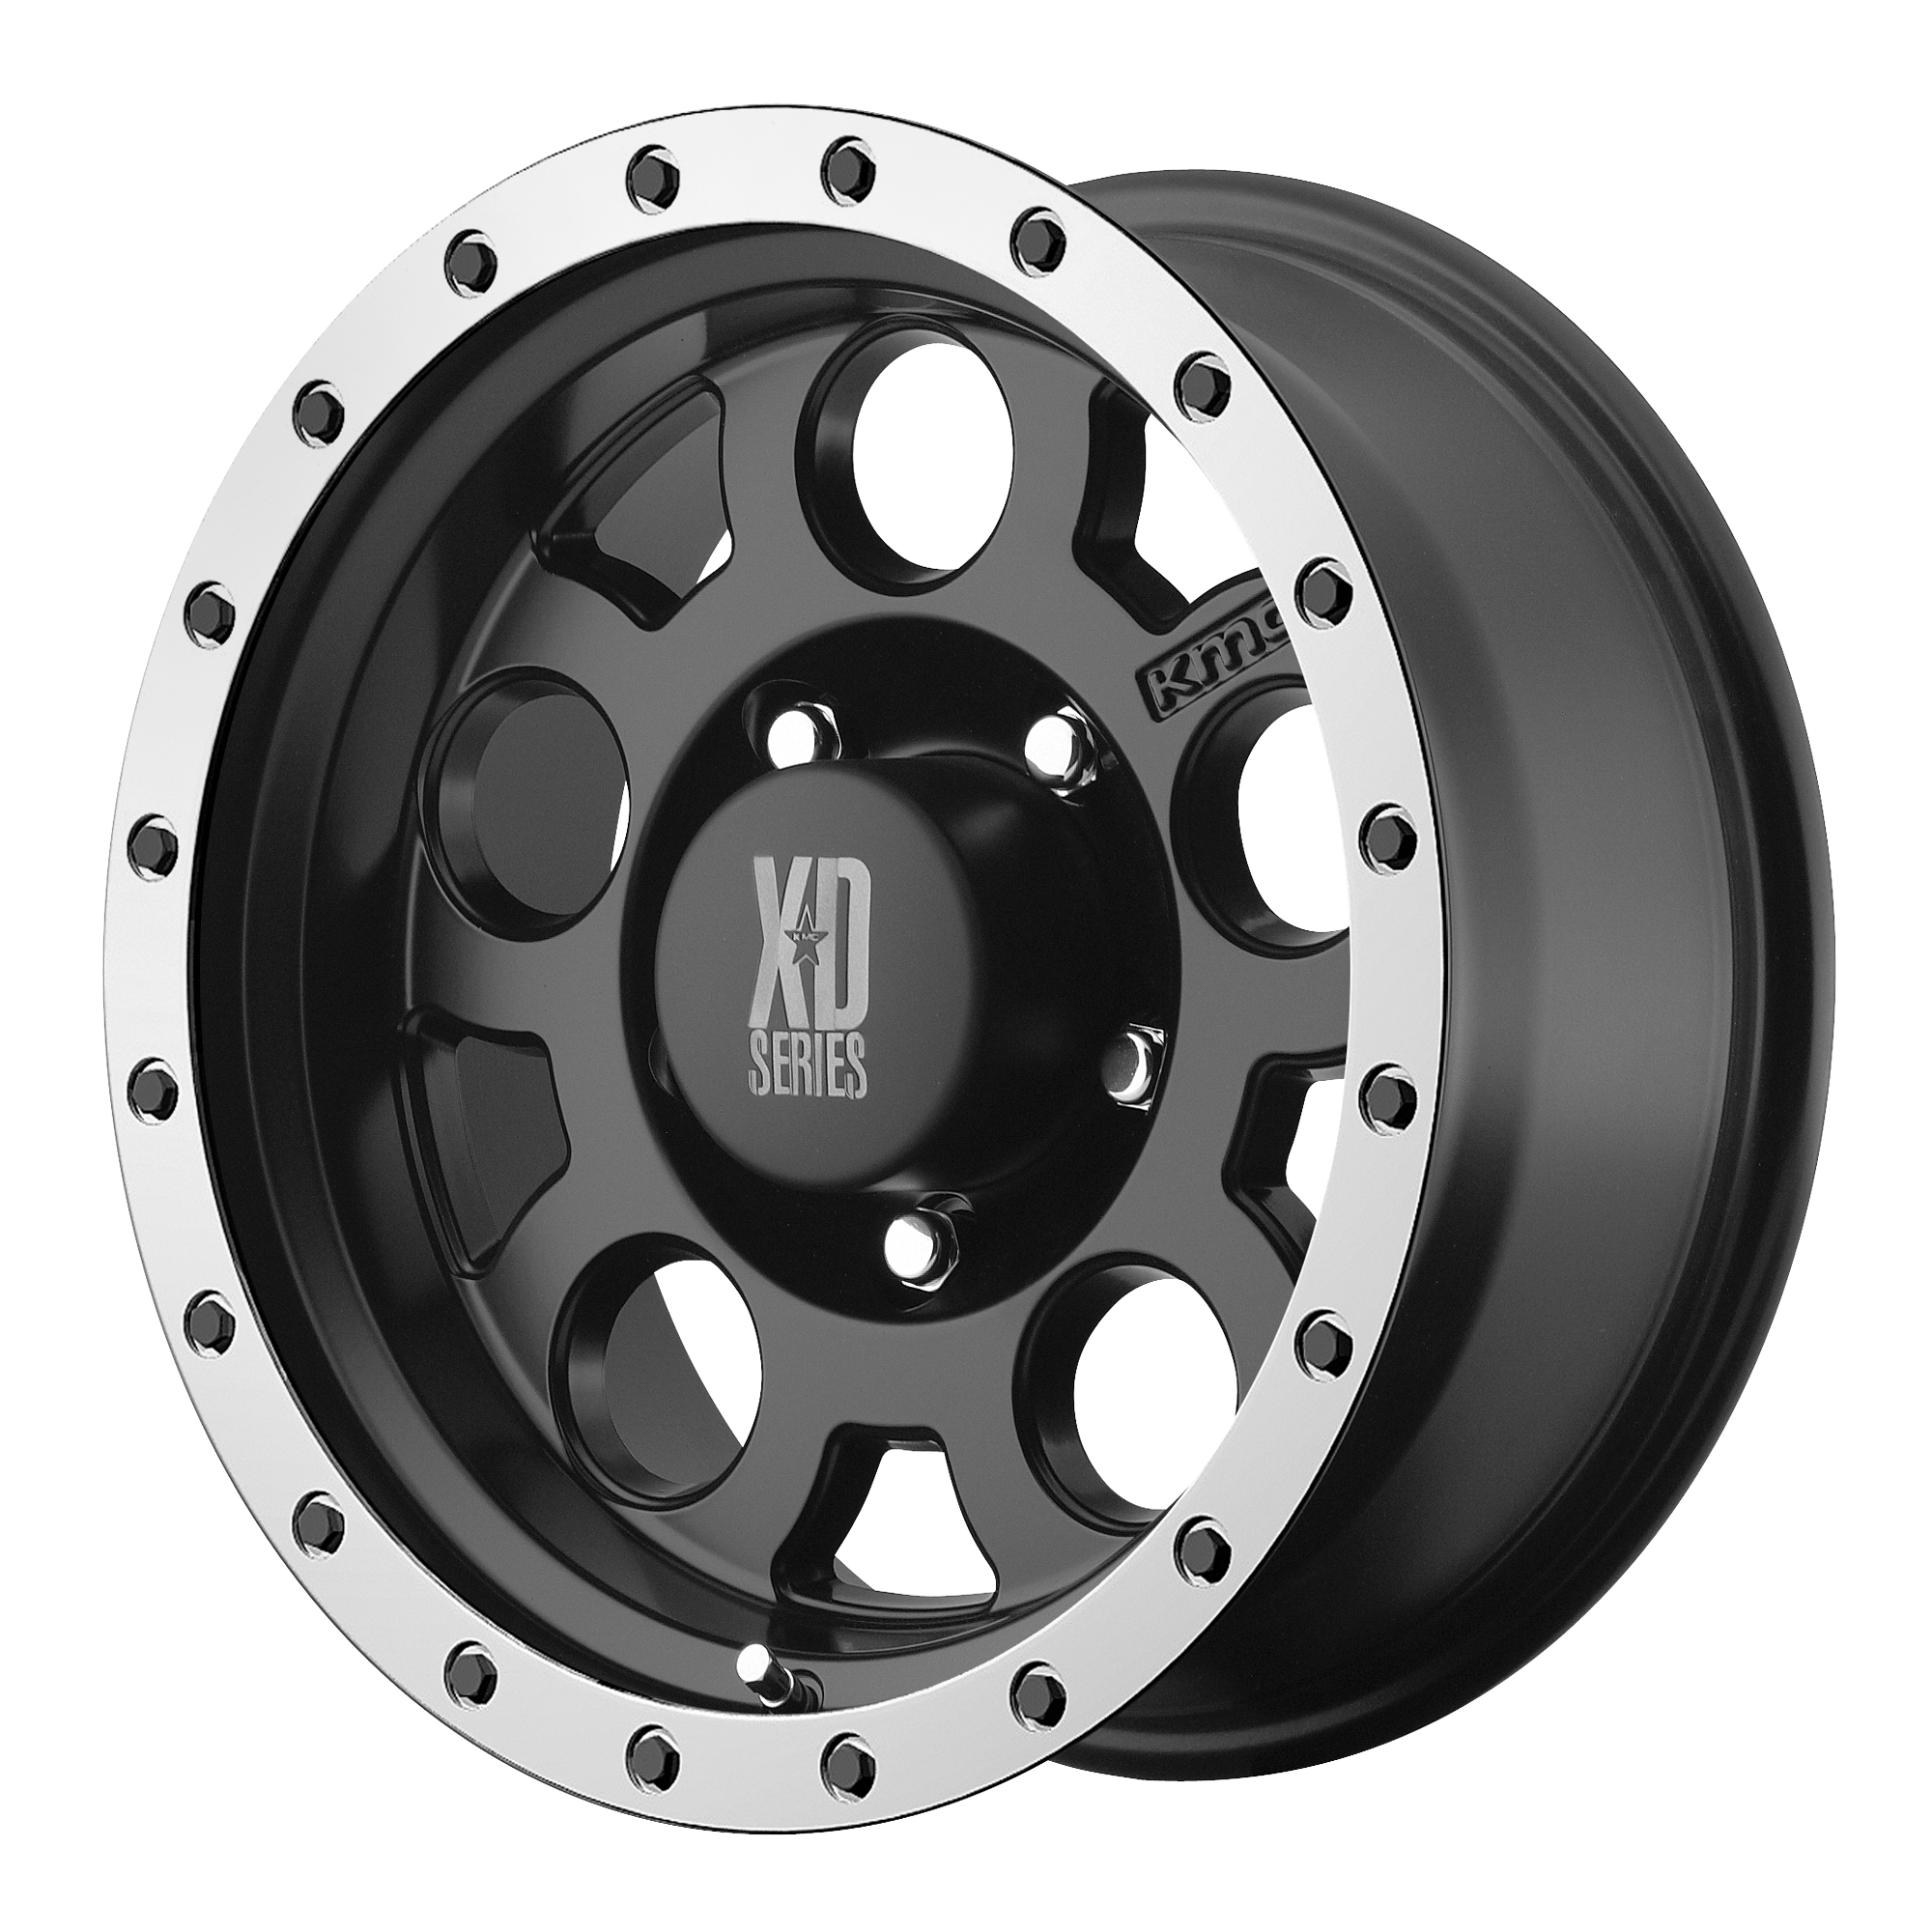 XD Series by KMC Wheels XD125 Matte BLK w/ MACH. BEAD RING